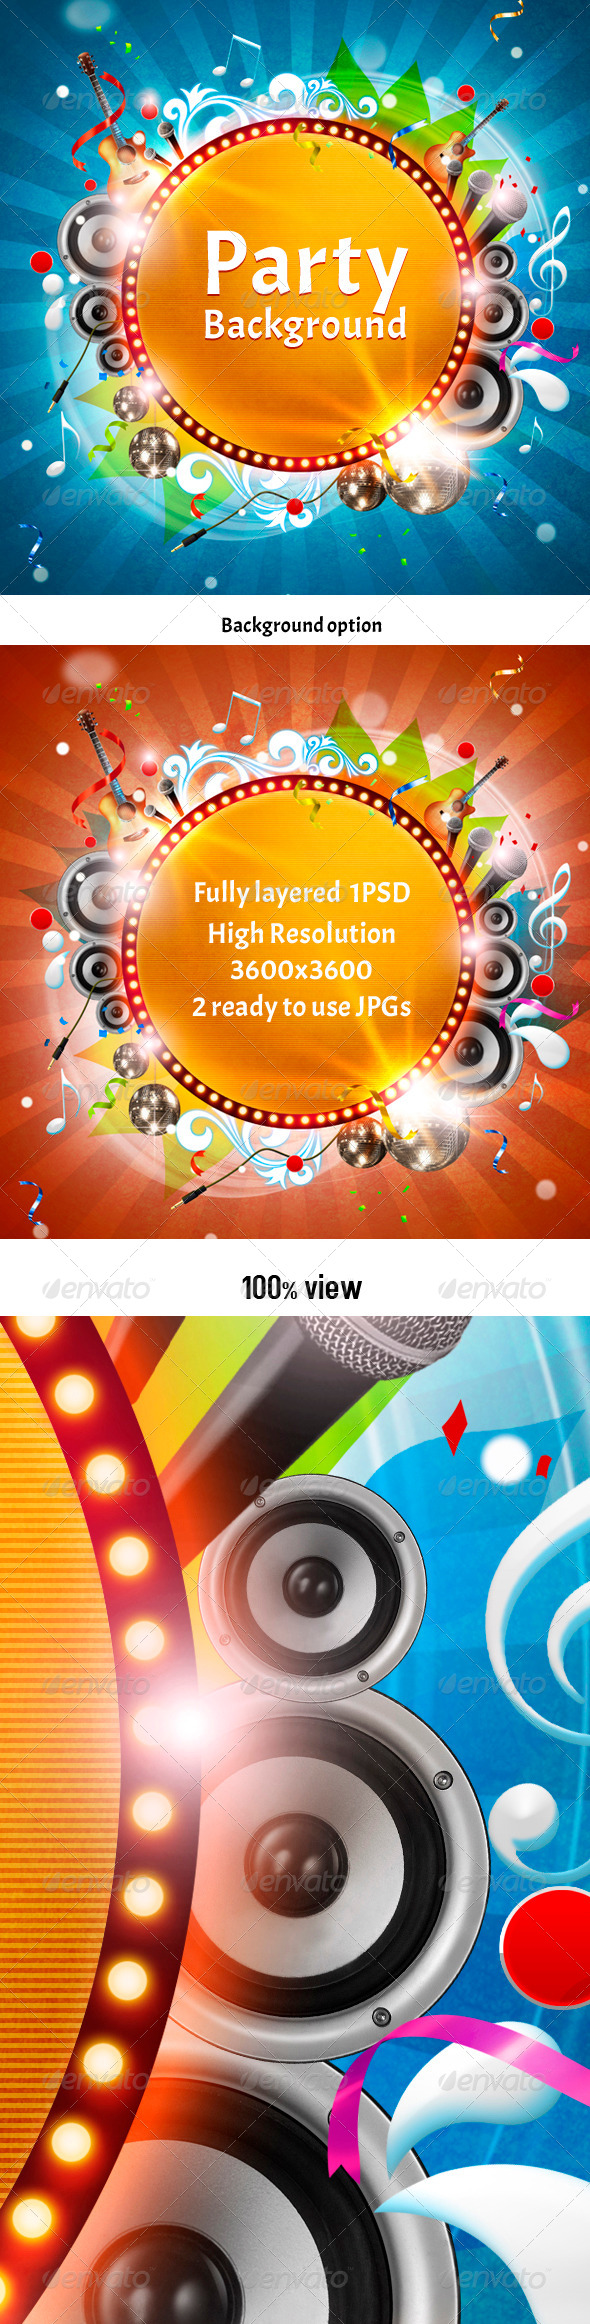 Party Background - Miscellaneous Backgrounds